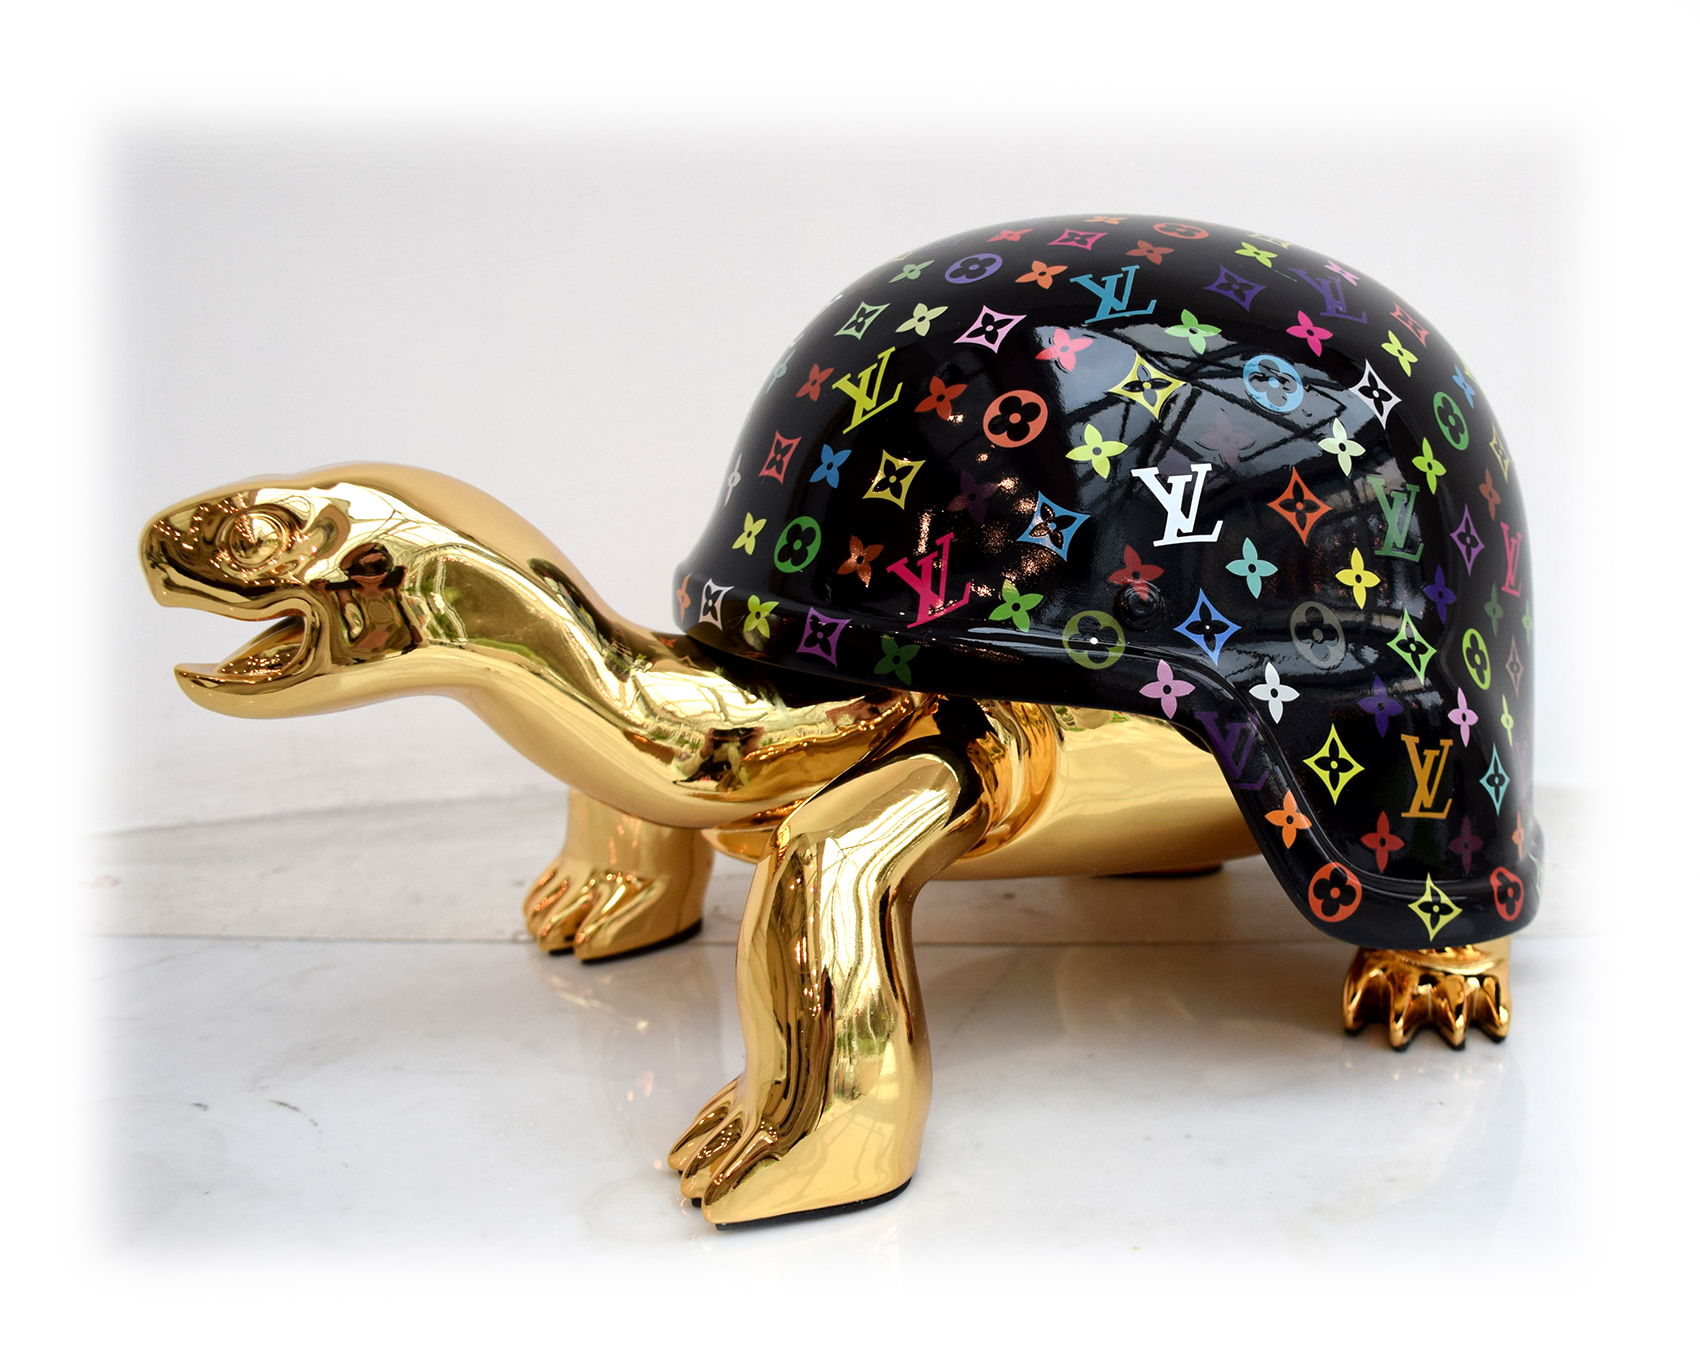 Diederik - Turtle (Black Fashion) , 4504-011-005